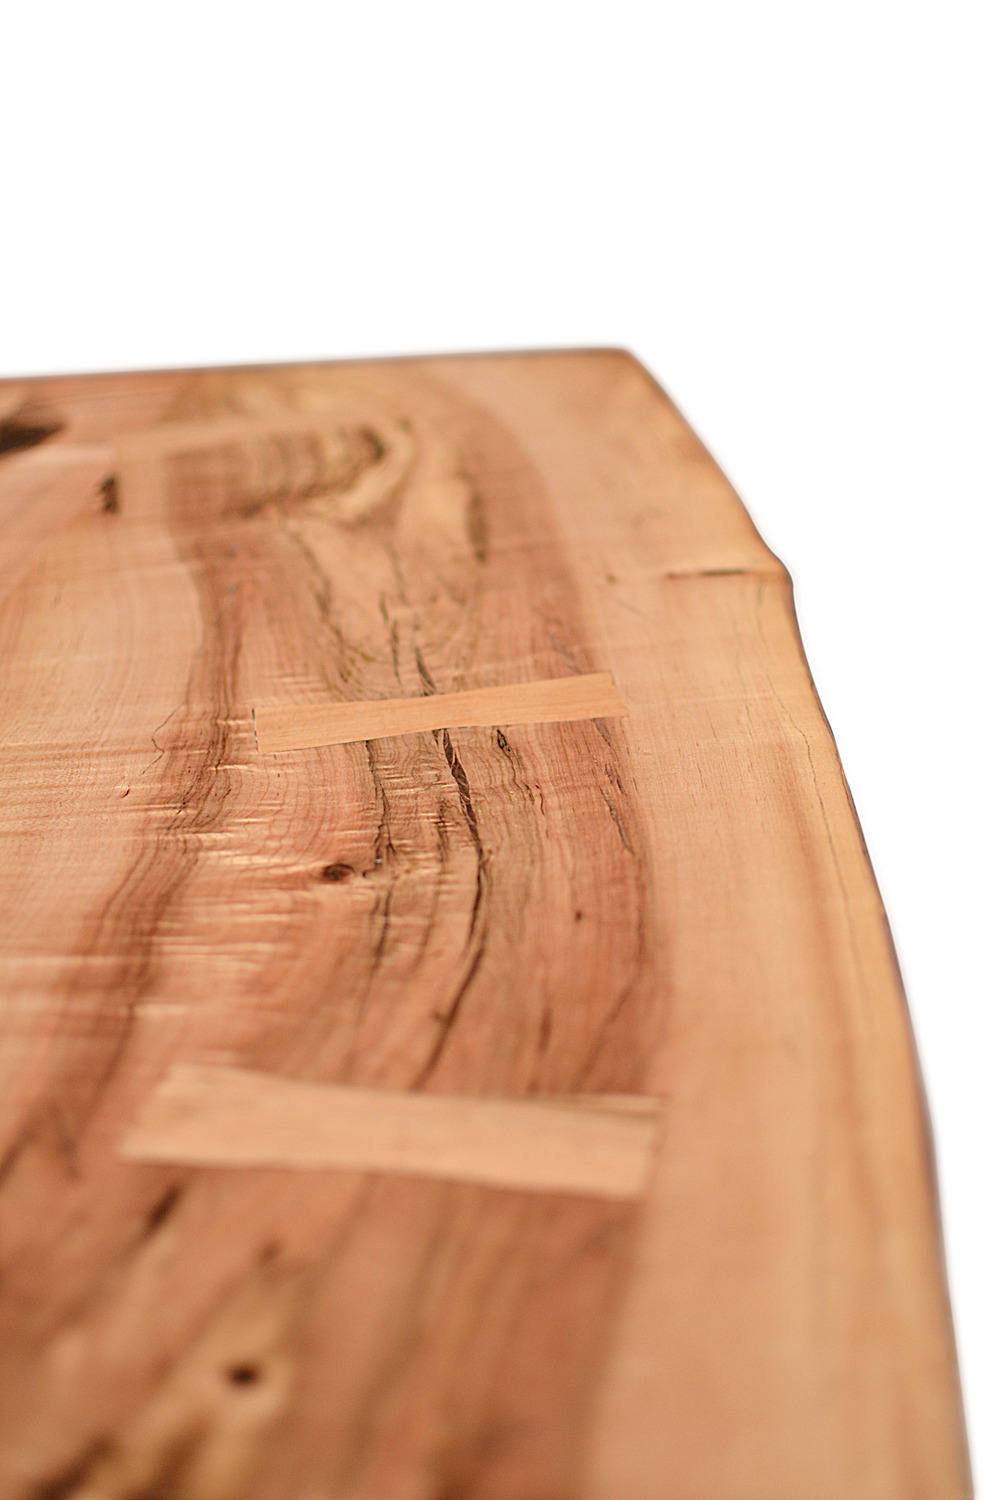 Etz & Steel Magnus Live Edge Table Close Up 5.jpg